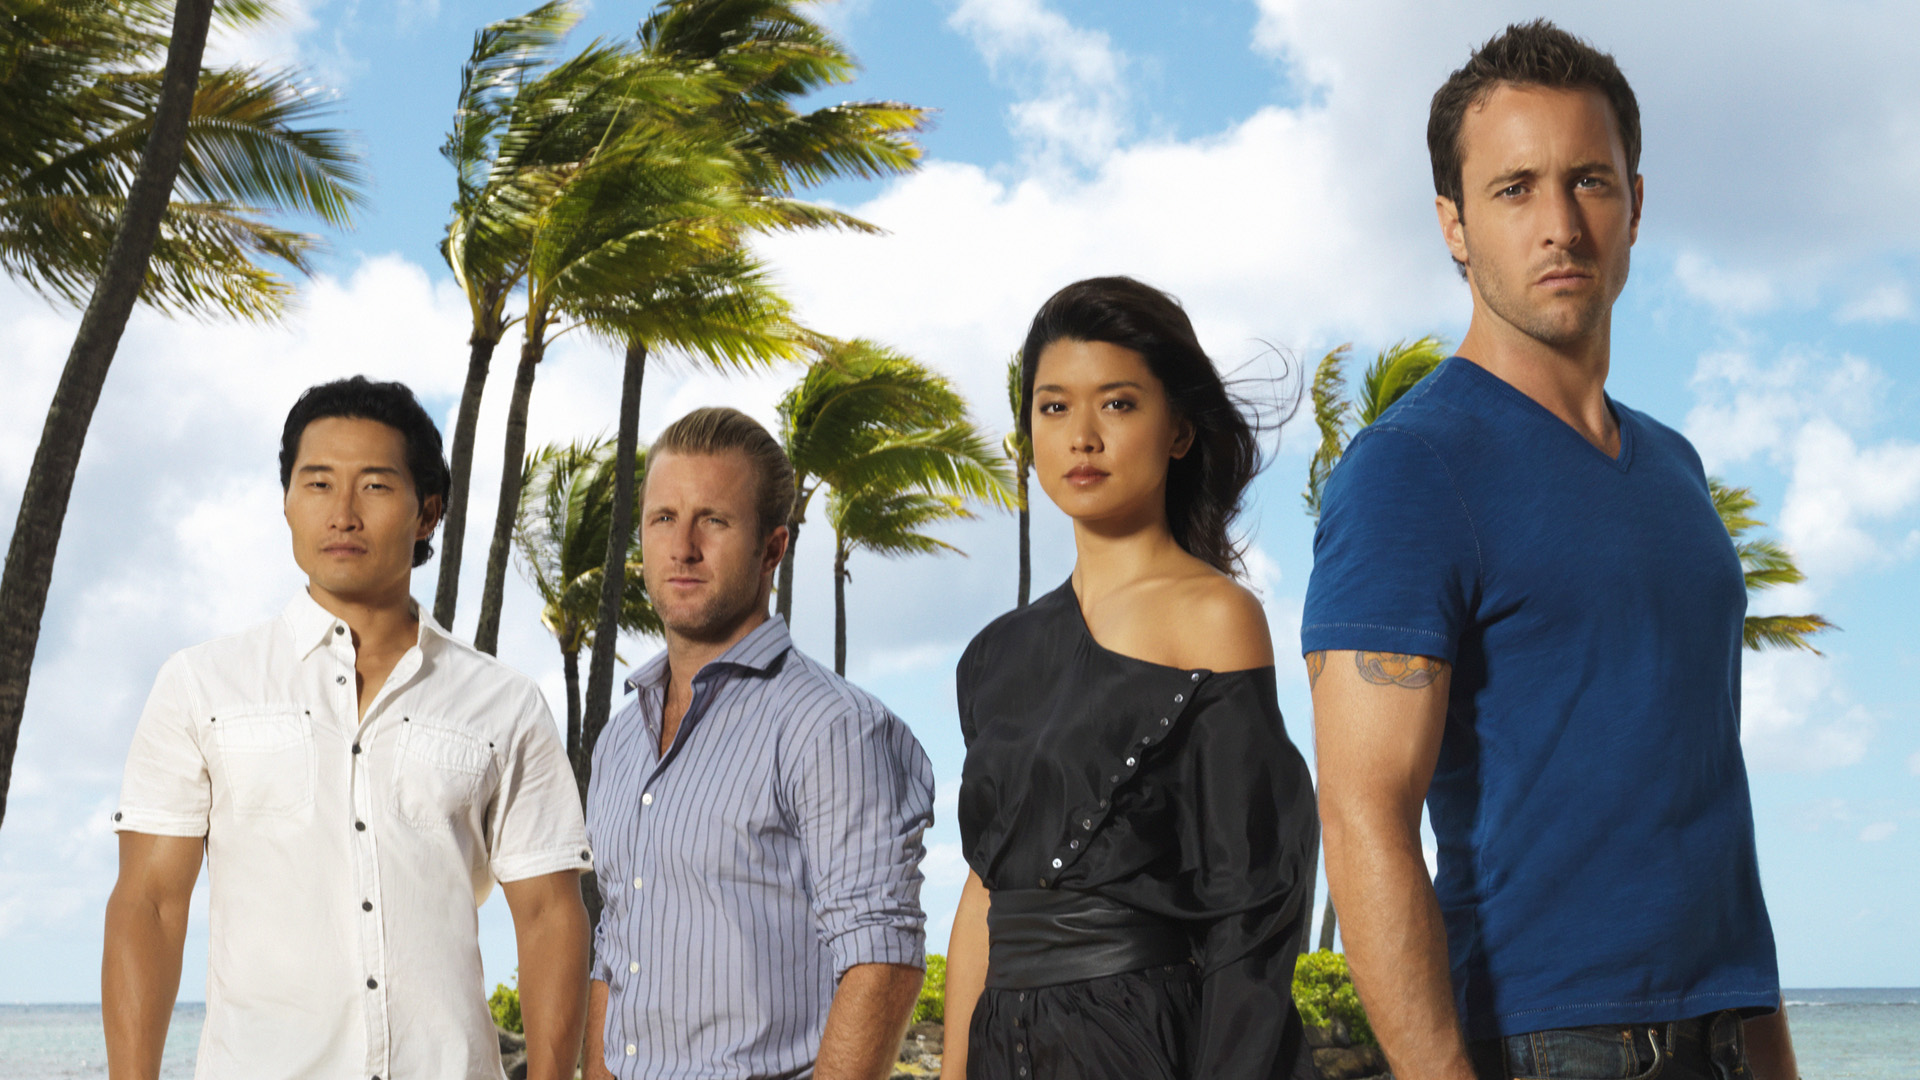 天堂執法者 第6季 第20集 Hawaii Five-O S6 Ep20